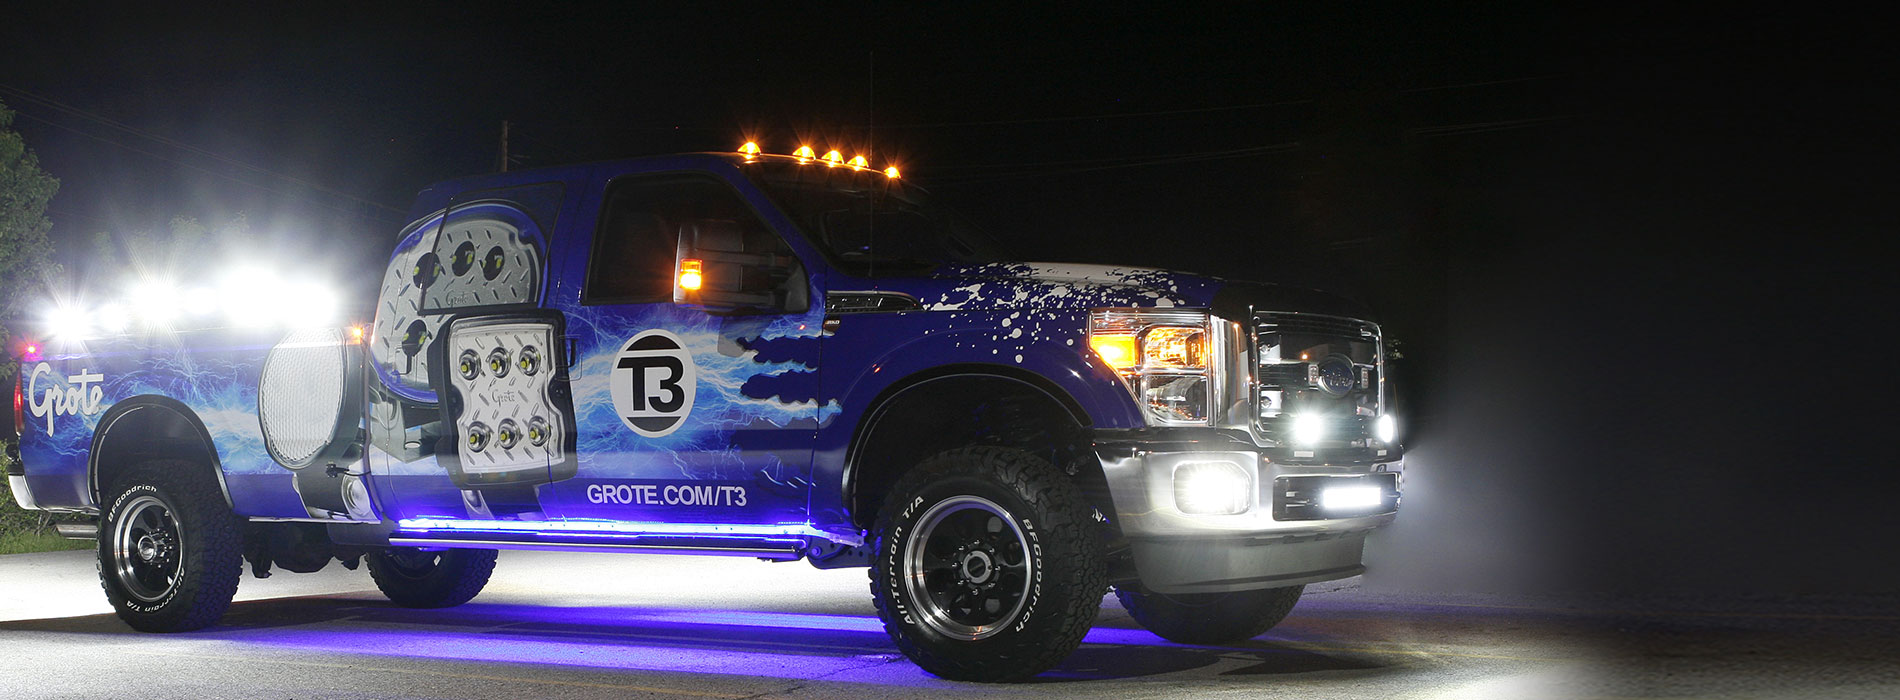 2017 Grote T3 Truck covered in LED Lights